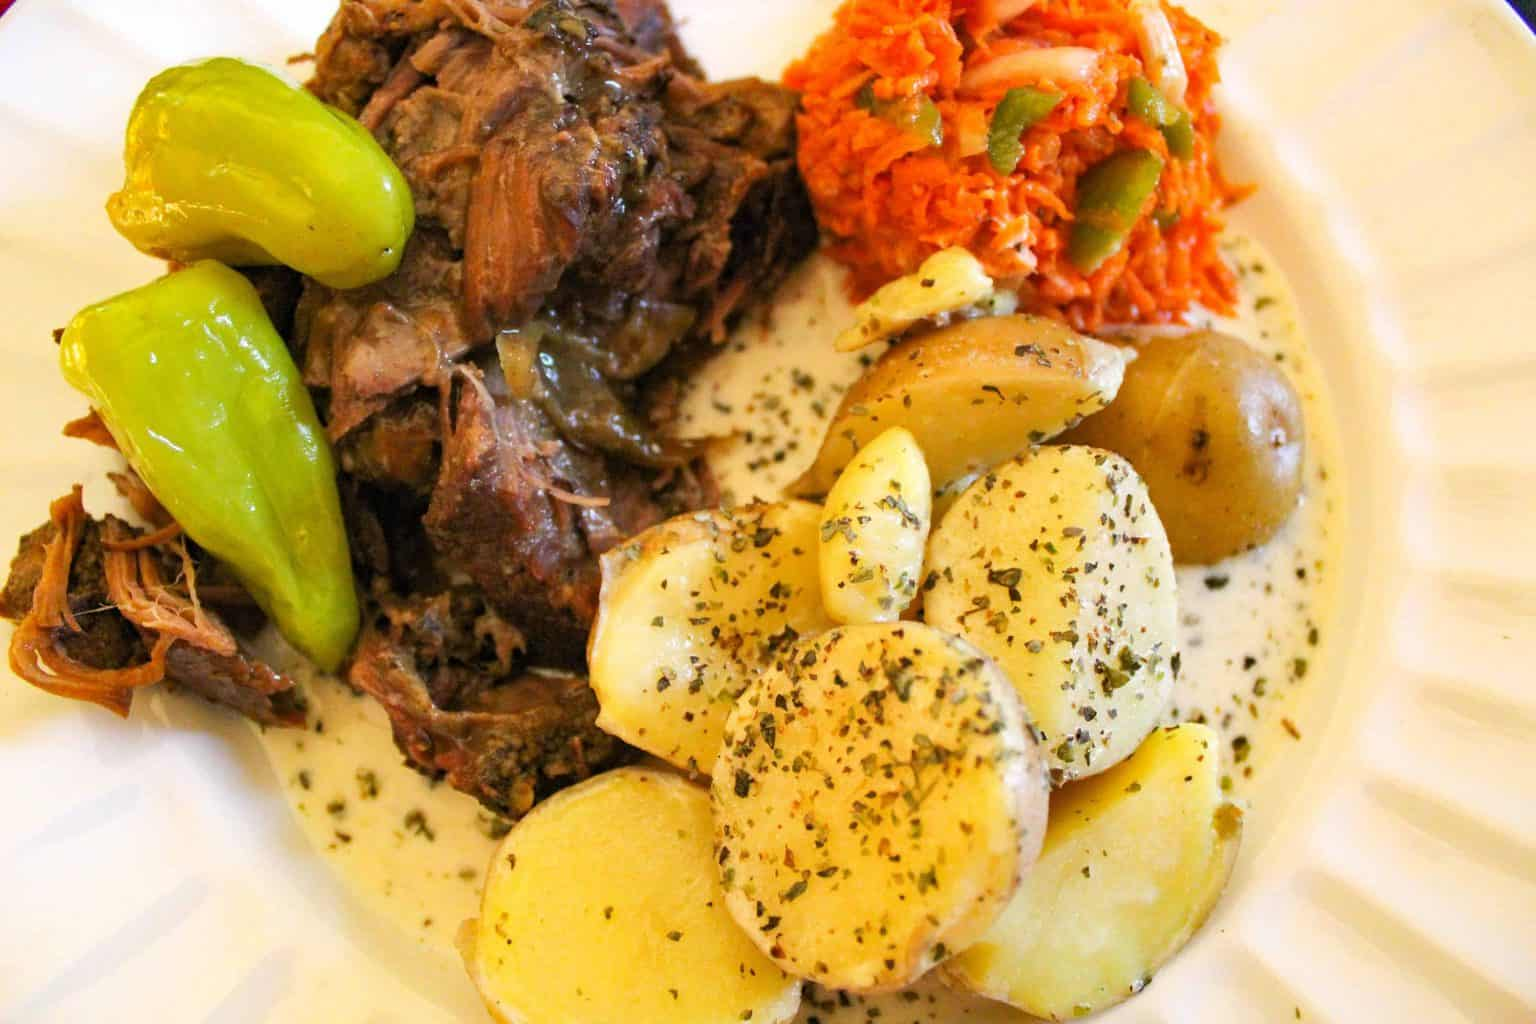 Mississippi Pot Roast with Gravy, cream potatoes and carrot slaw on white plate